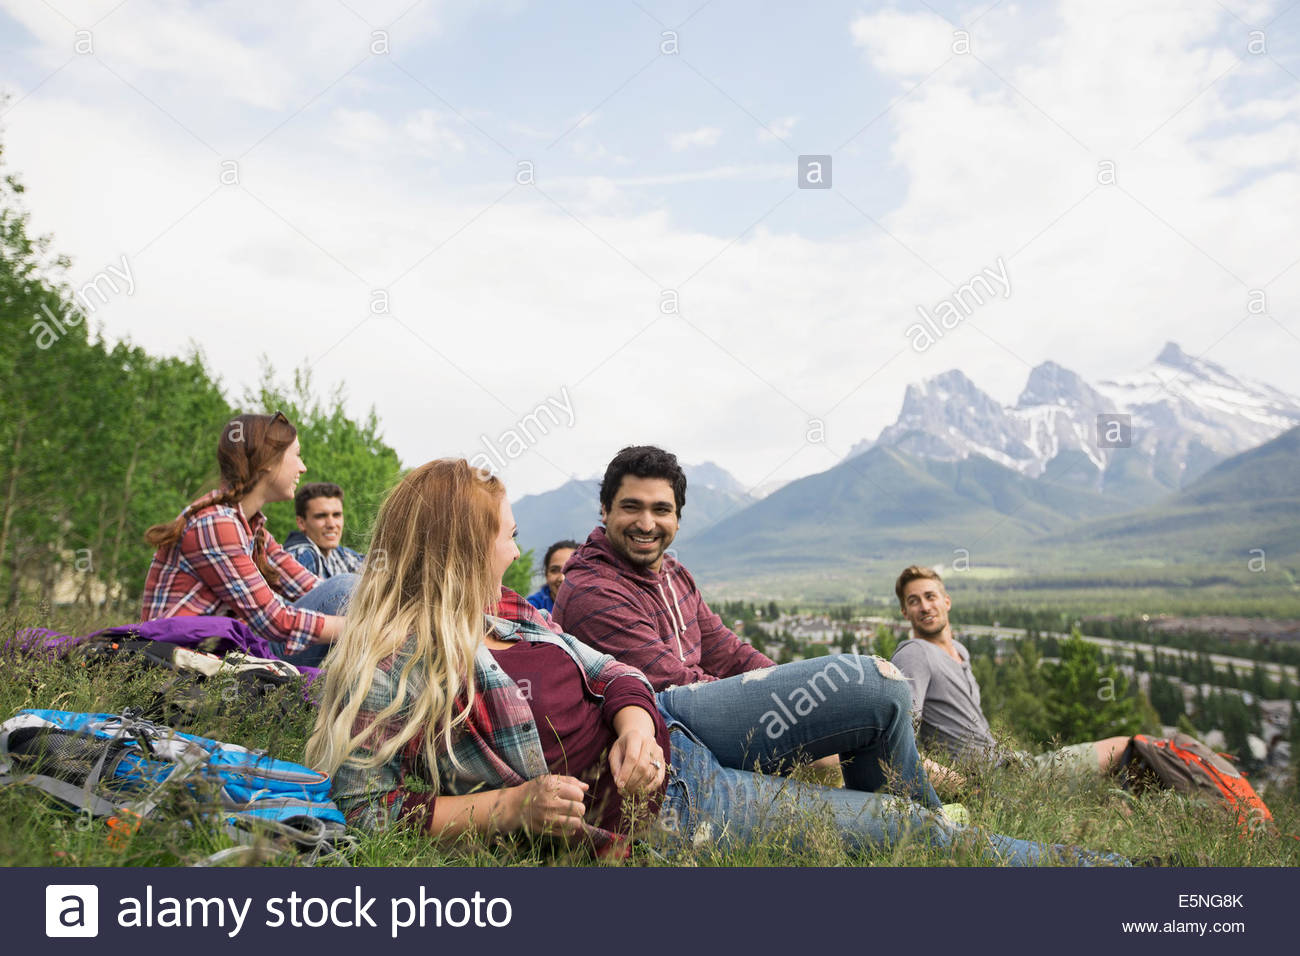 Friends relaxing in grass near mountains - Stock Image